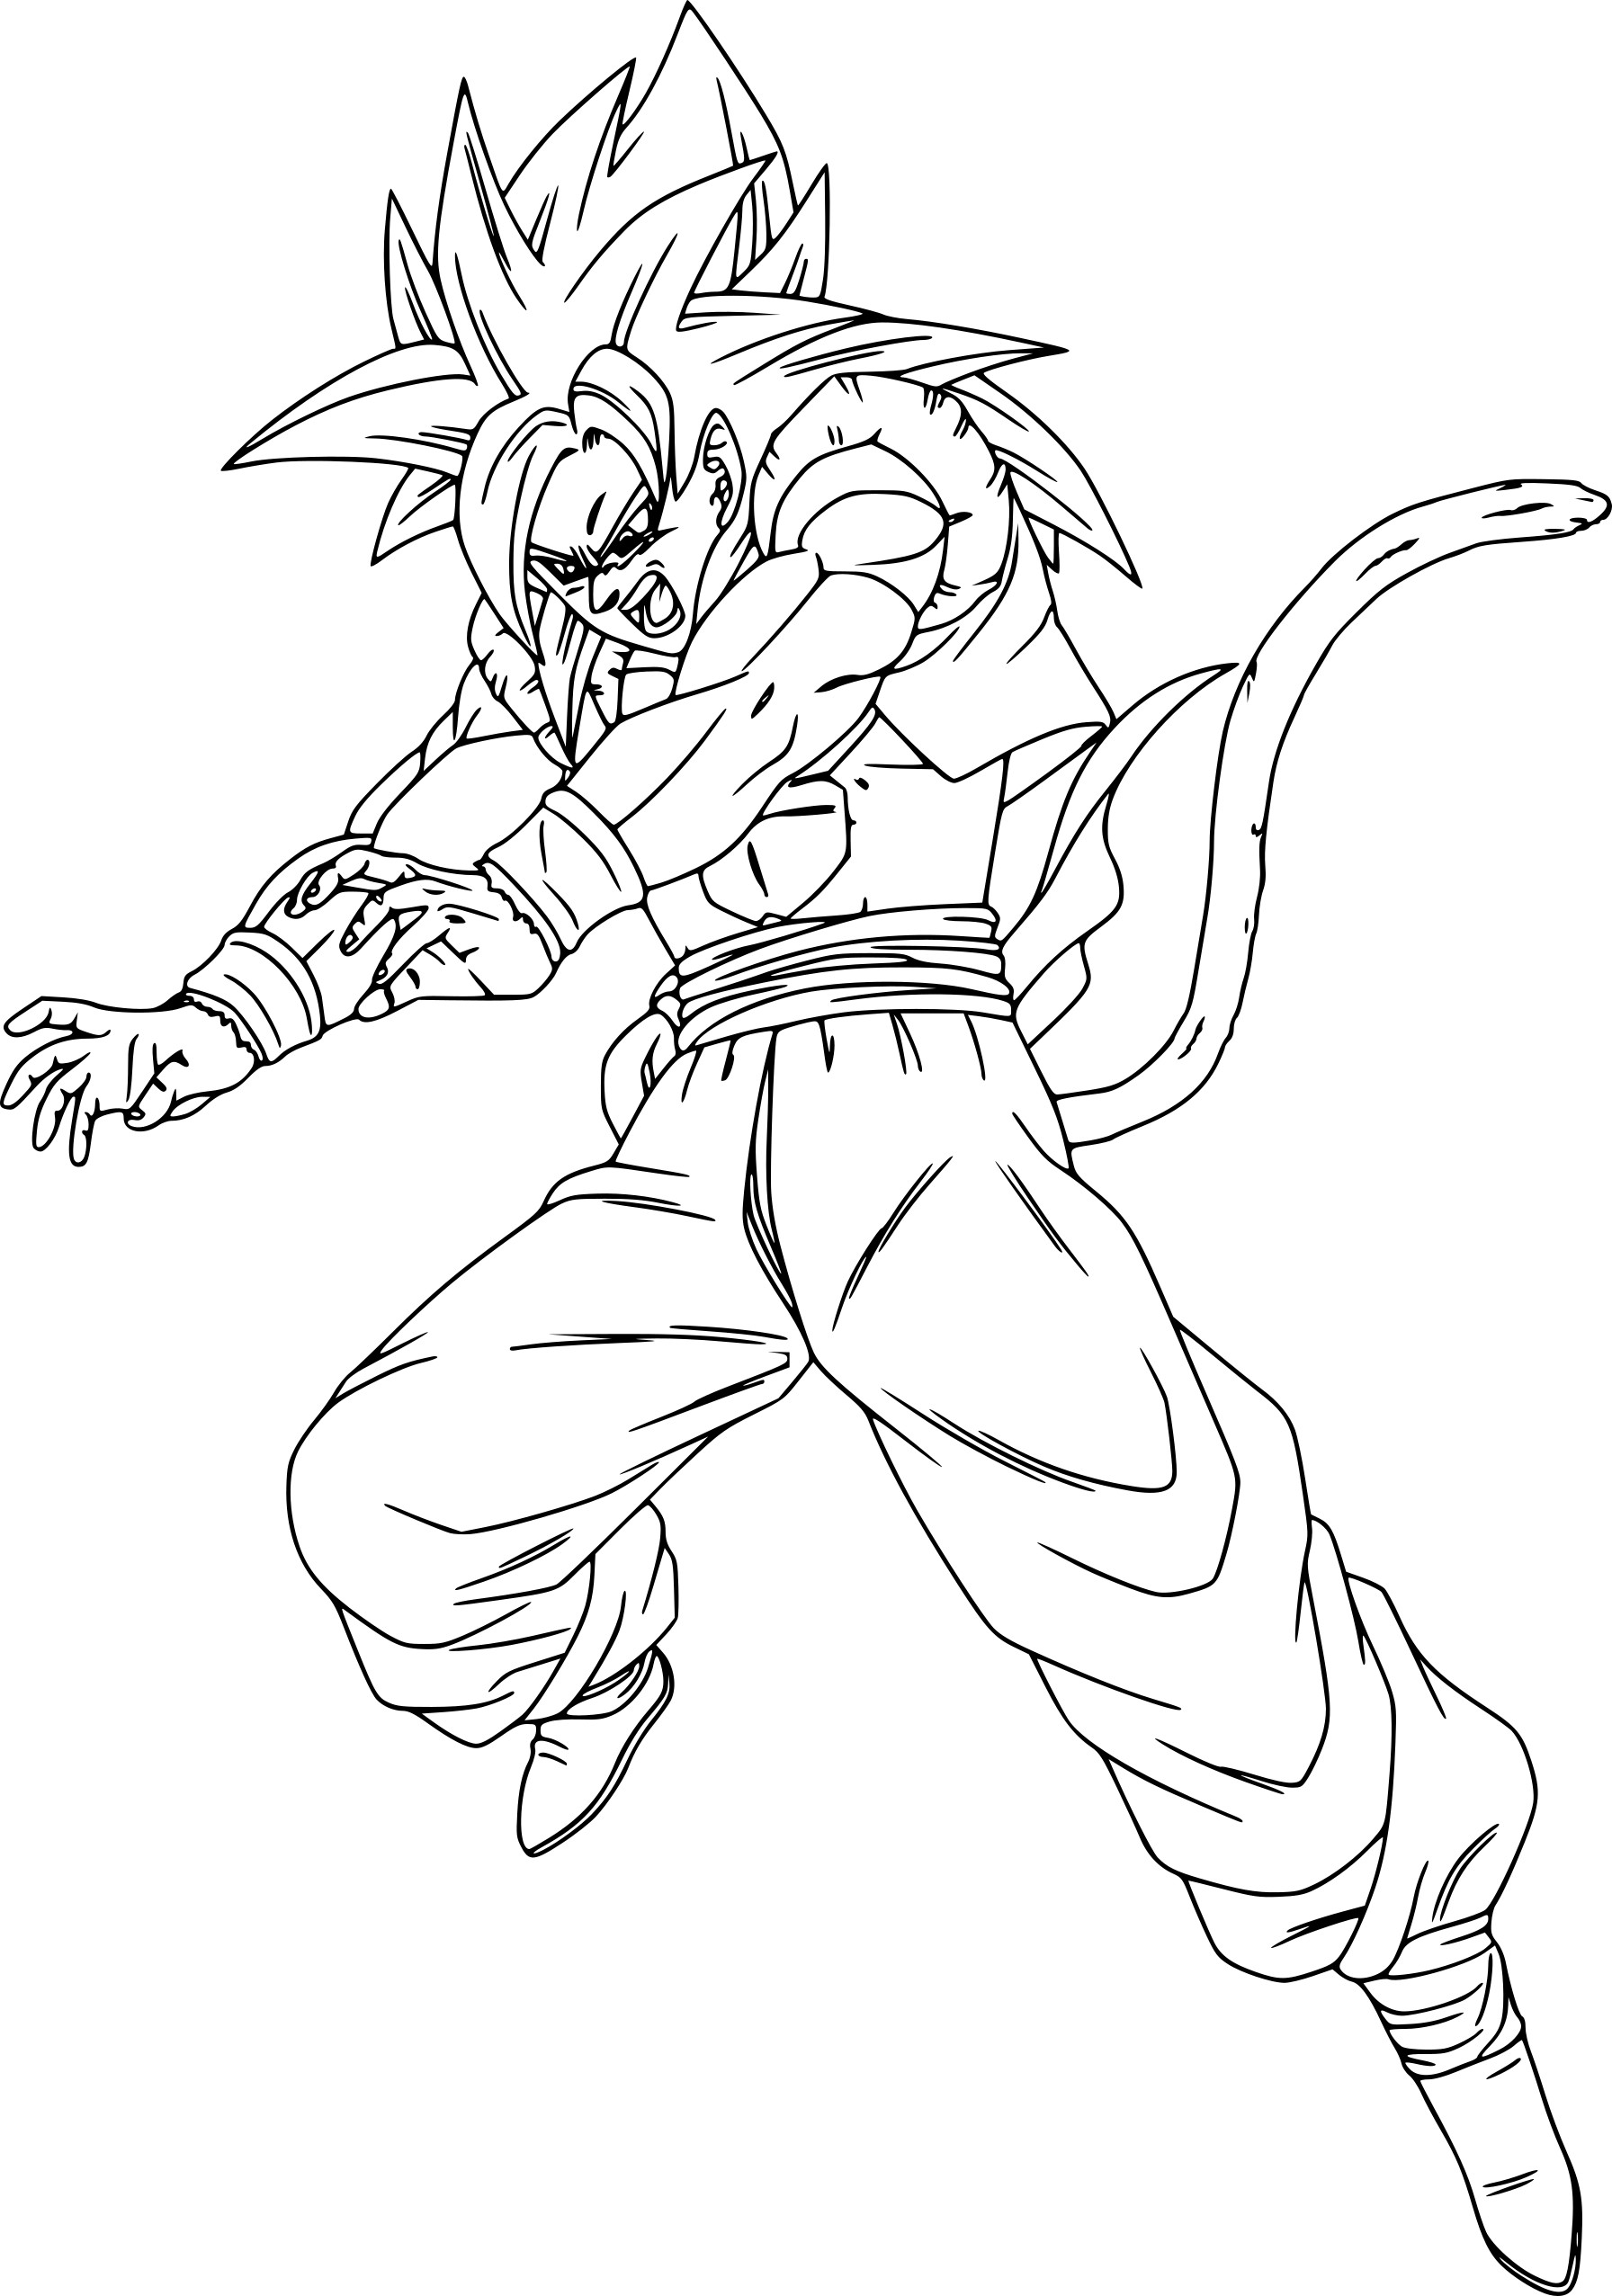 Coloriage gogeta dragon ball z imprimer - Coloriage gratuit dragon ball z ...